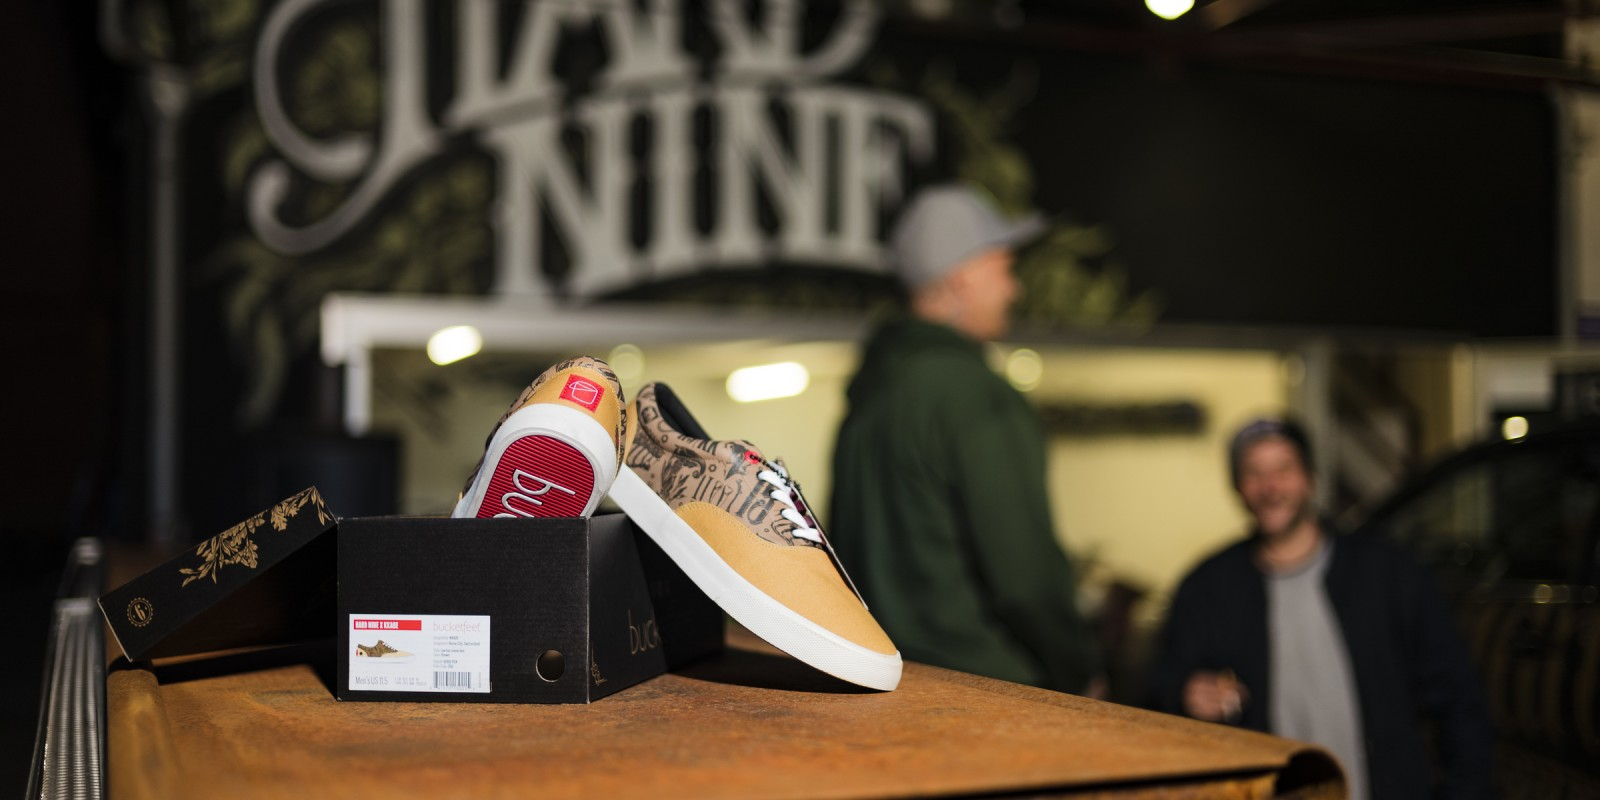 Lifestyle/ Media Project with Danny Schneider and his Signature Shoe launch.